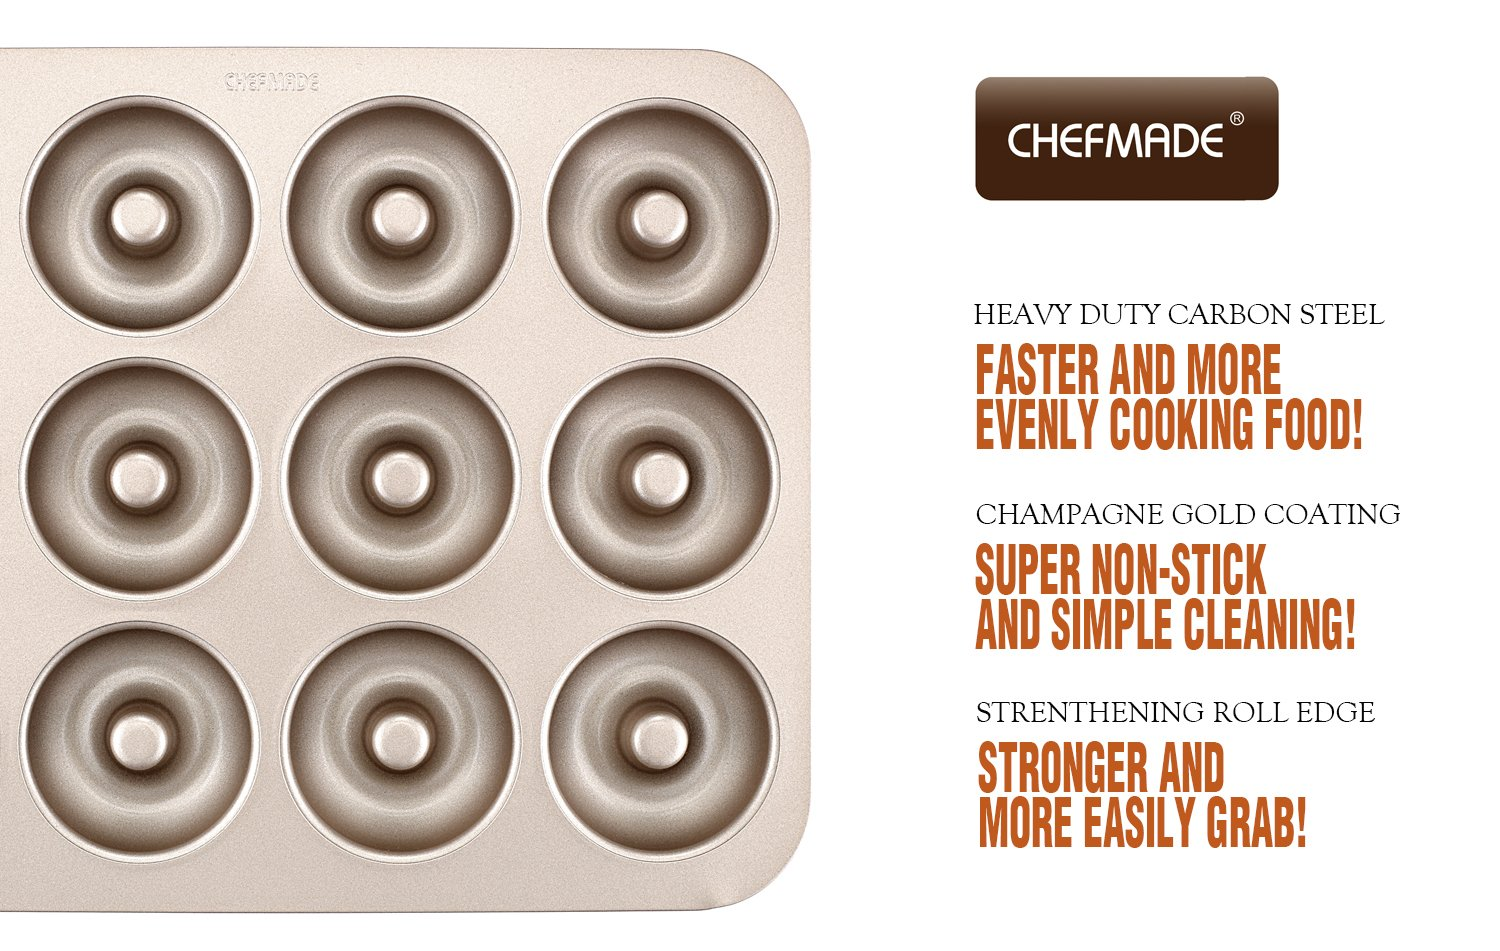 CHEFMADE Donut Mold Cake Pan, 12-Cavity Non-Stick Ring Doughnut Bakeware, FDA Approved for Oven Baking (Champagne Gold) by CHEFMADE (Image #6)